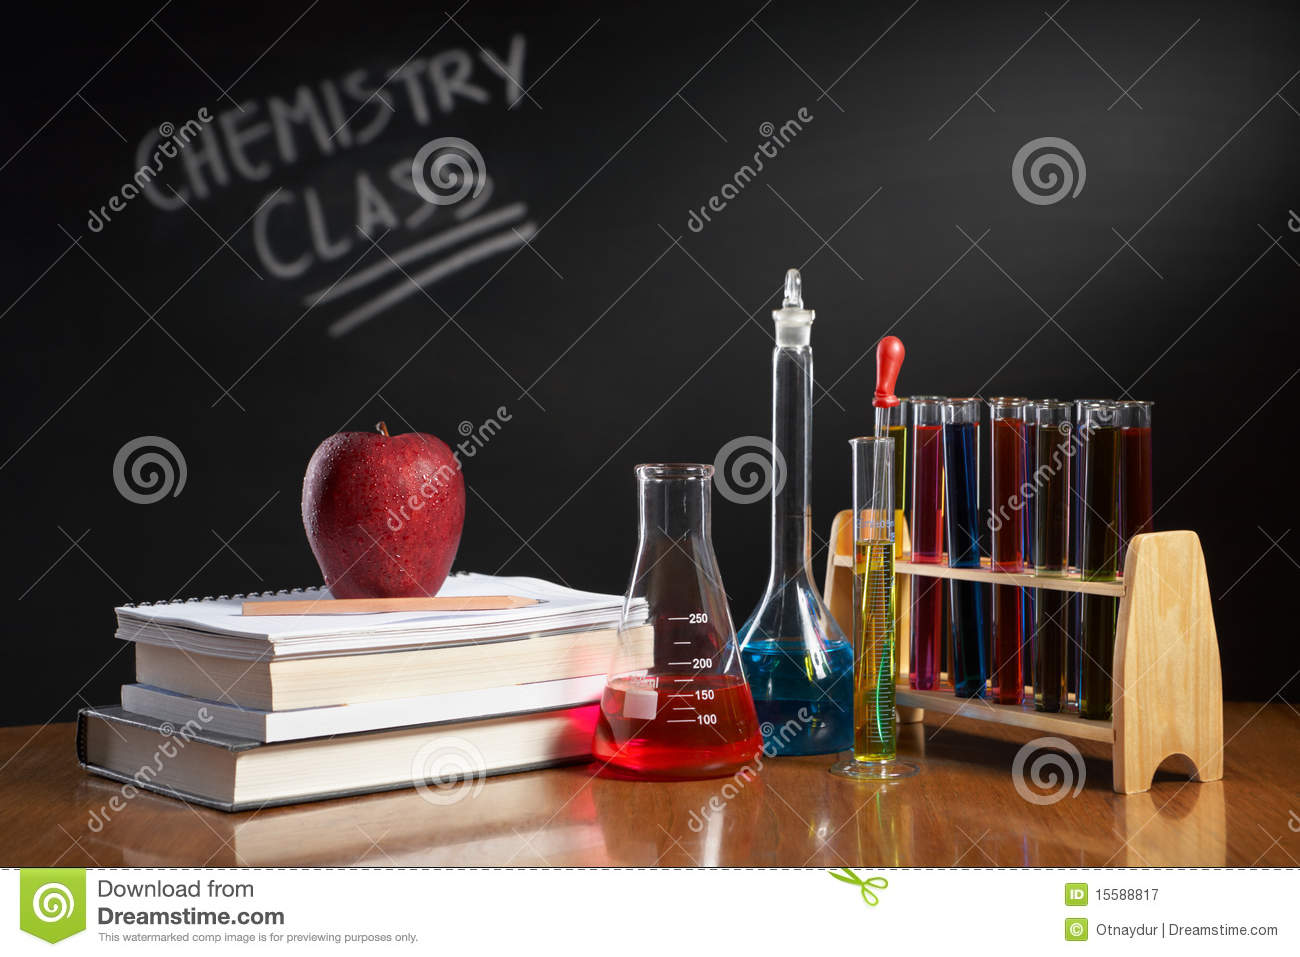 the chemistry of photography Before photography was invented artists would use the camera obscura to assist them in drawing the image photography introduced chemical methods for recording and printing the image now images can also be recorded electronically in digital format and output via printers and monitors.